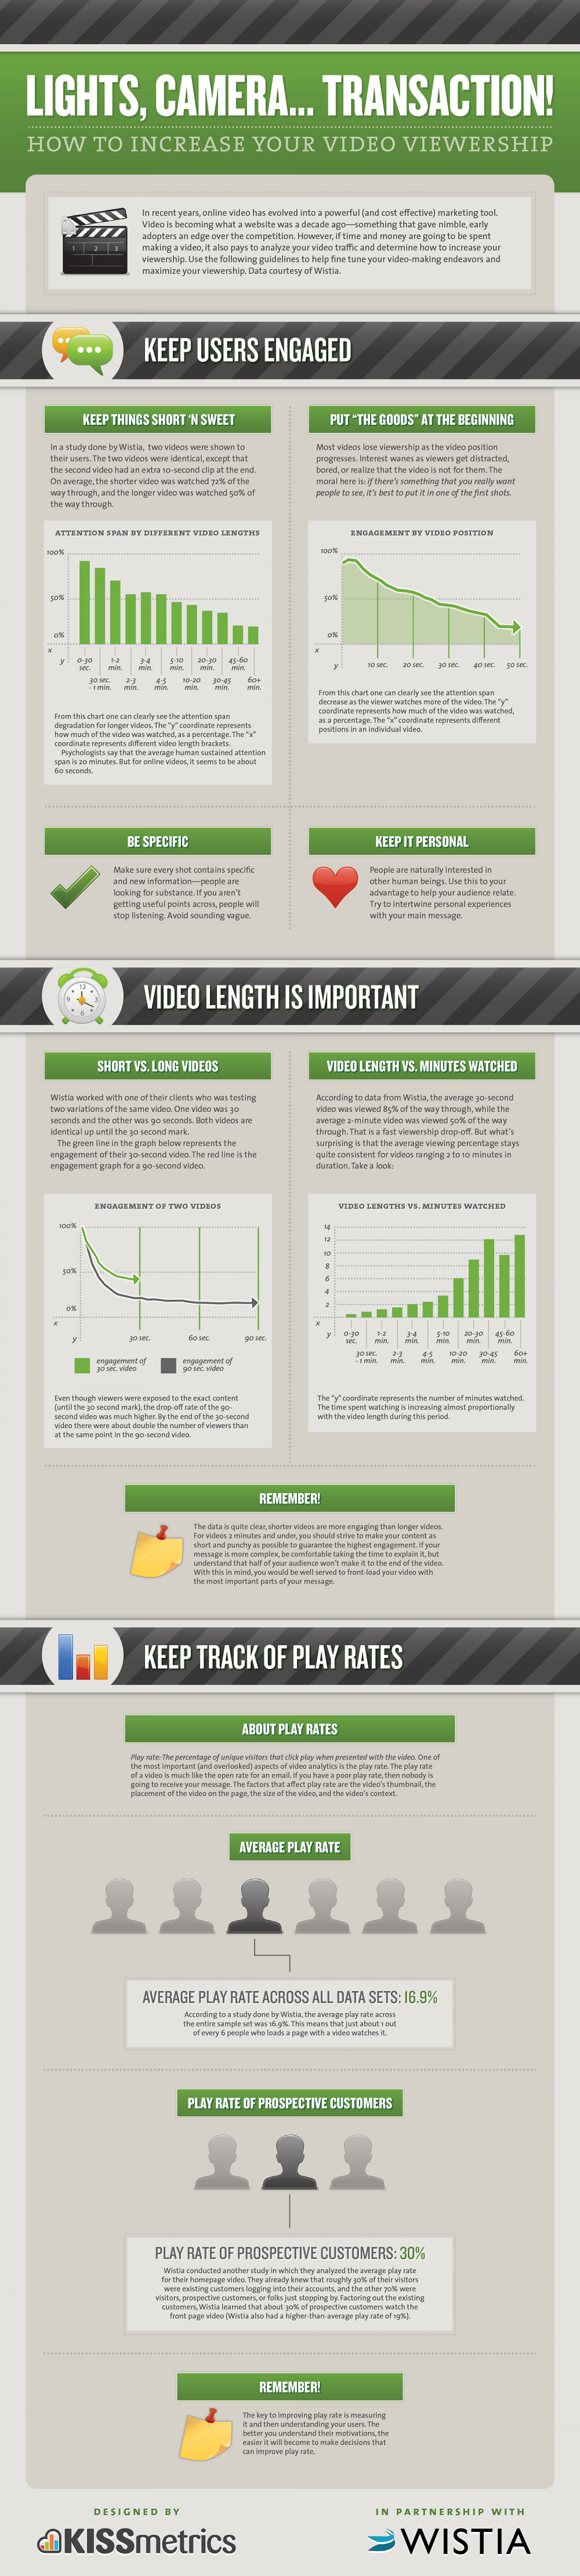 Lights, Camera... Transaction! Infographic